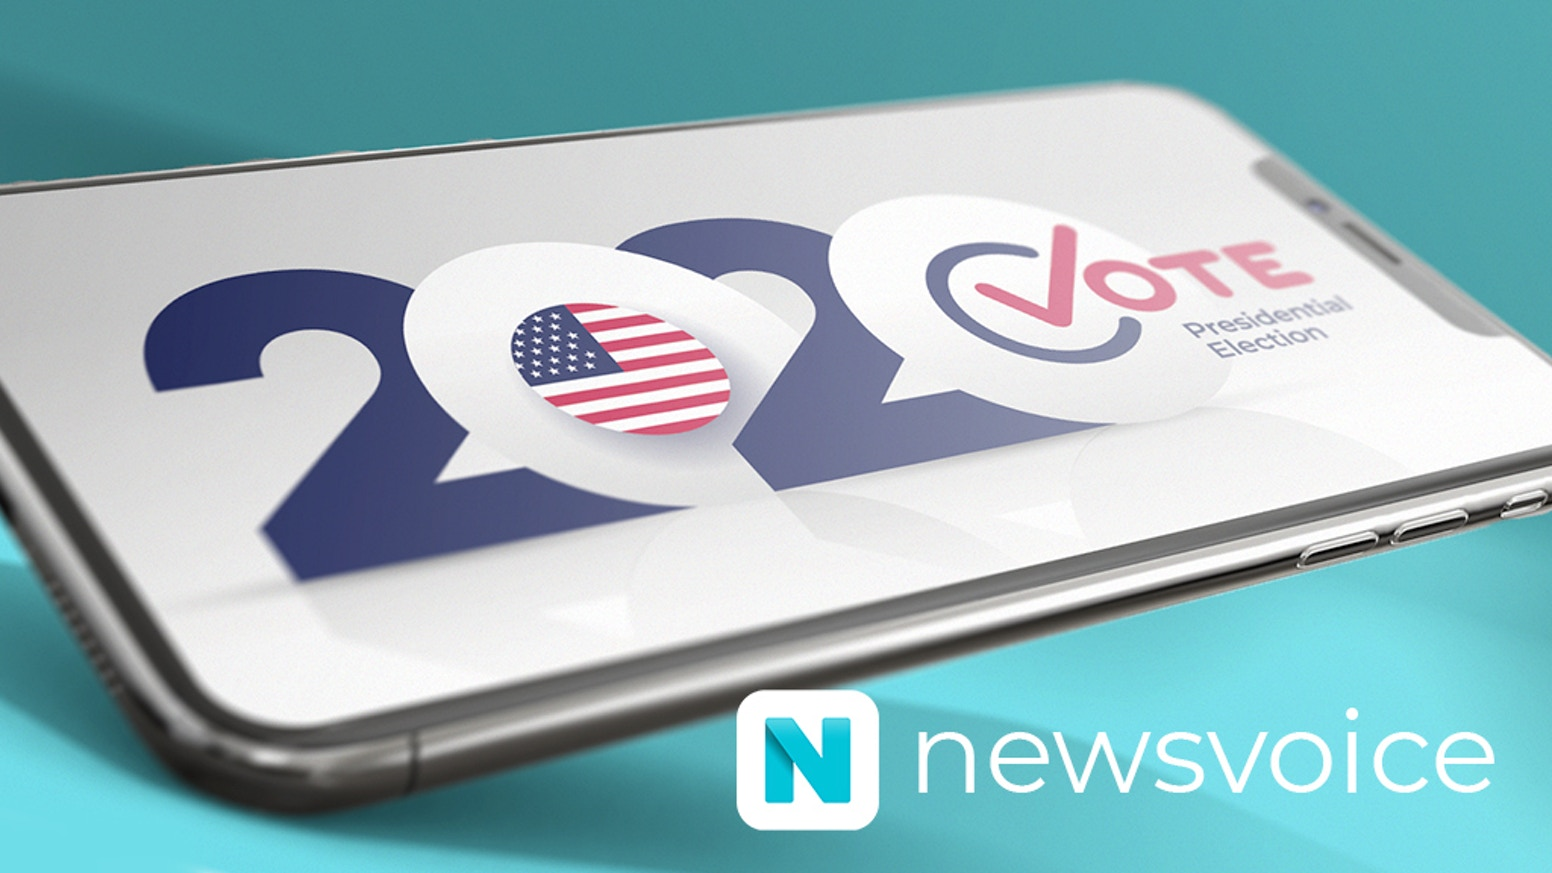 Free independent news app with dashboards for everything around the U.S. elections. News, candidates, polling data, and results.